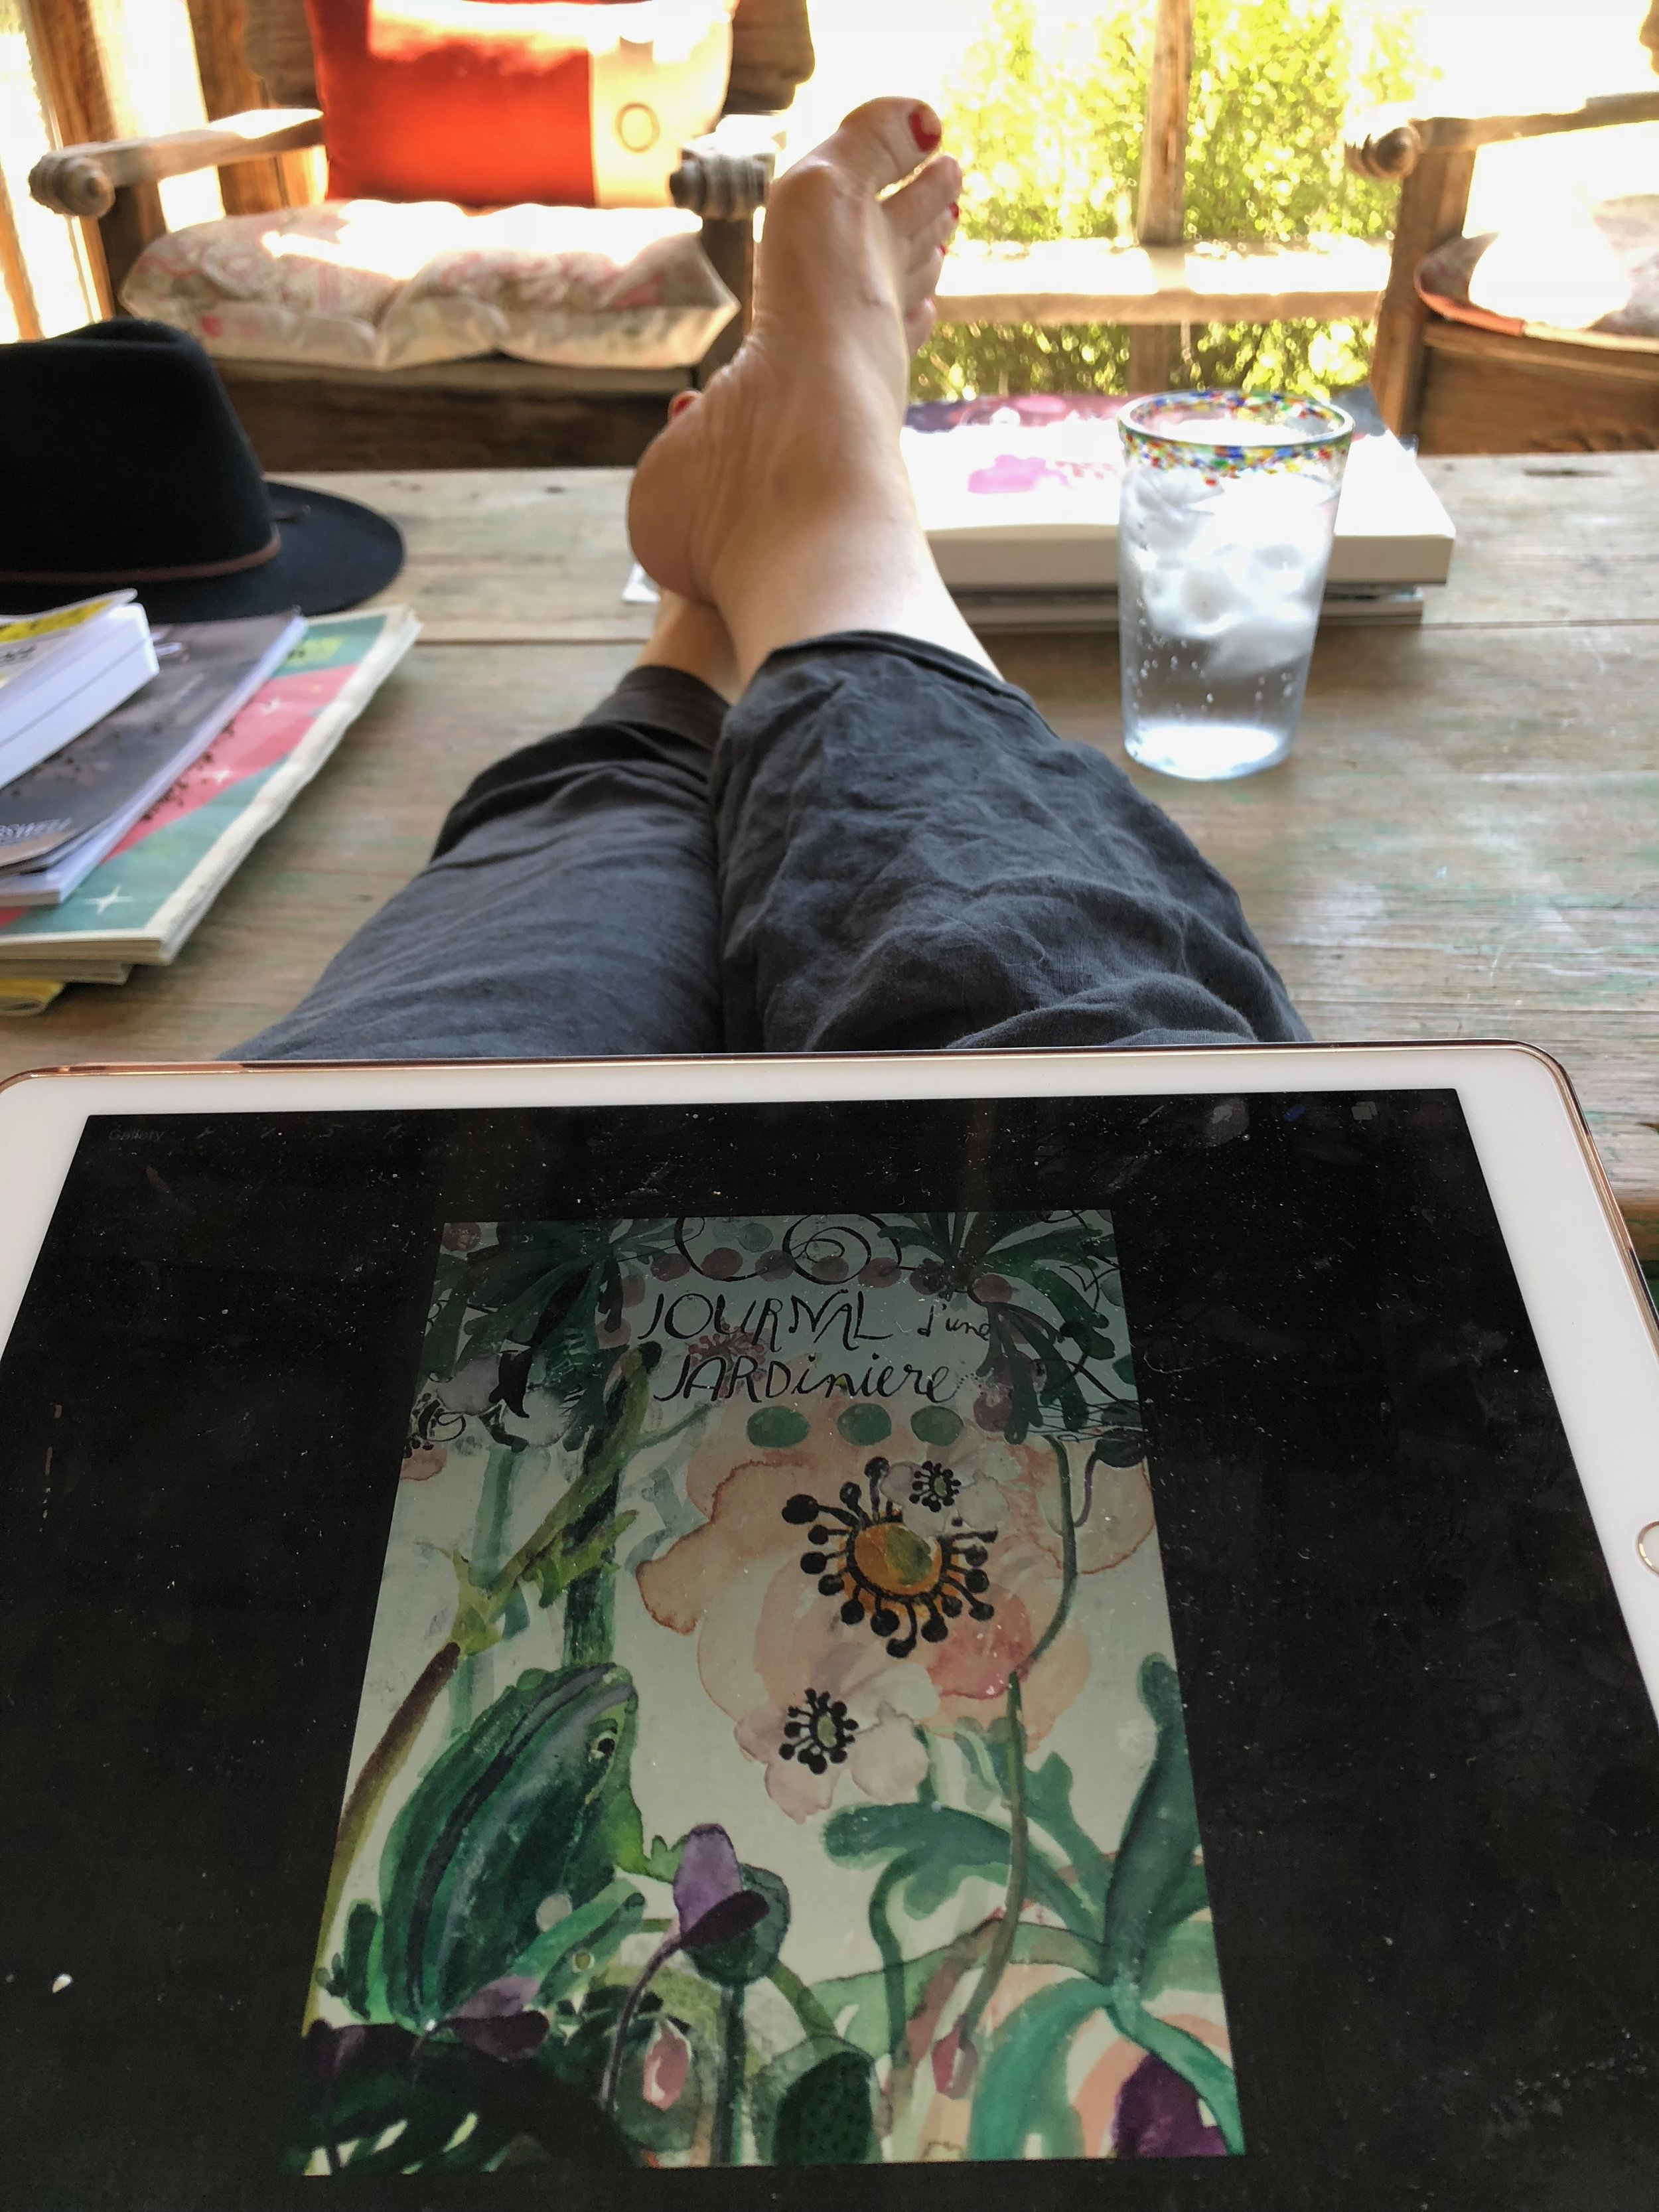 THE LIFE. Don't mind my chipped nail polish and adorable chubby Hobbit toes--concentrate on how illustrators get to do it!